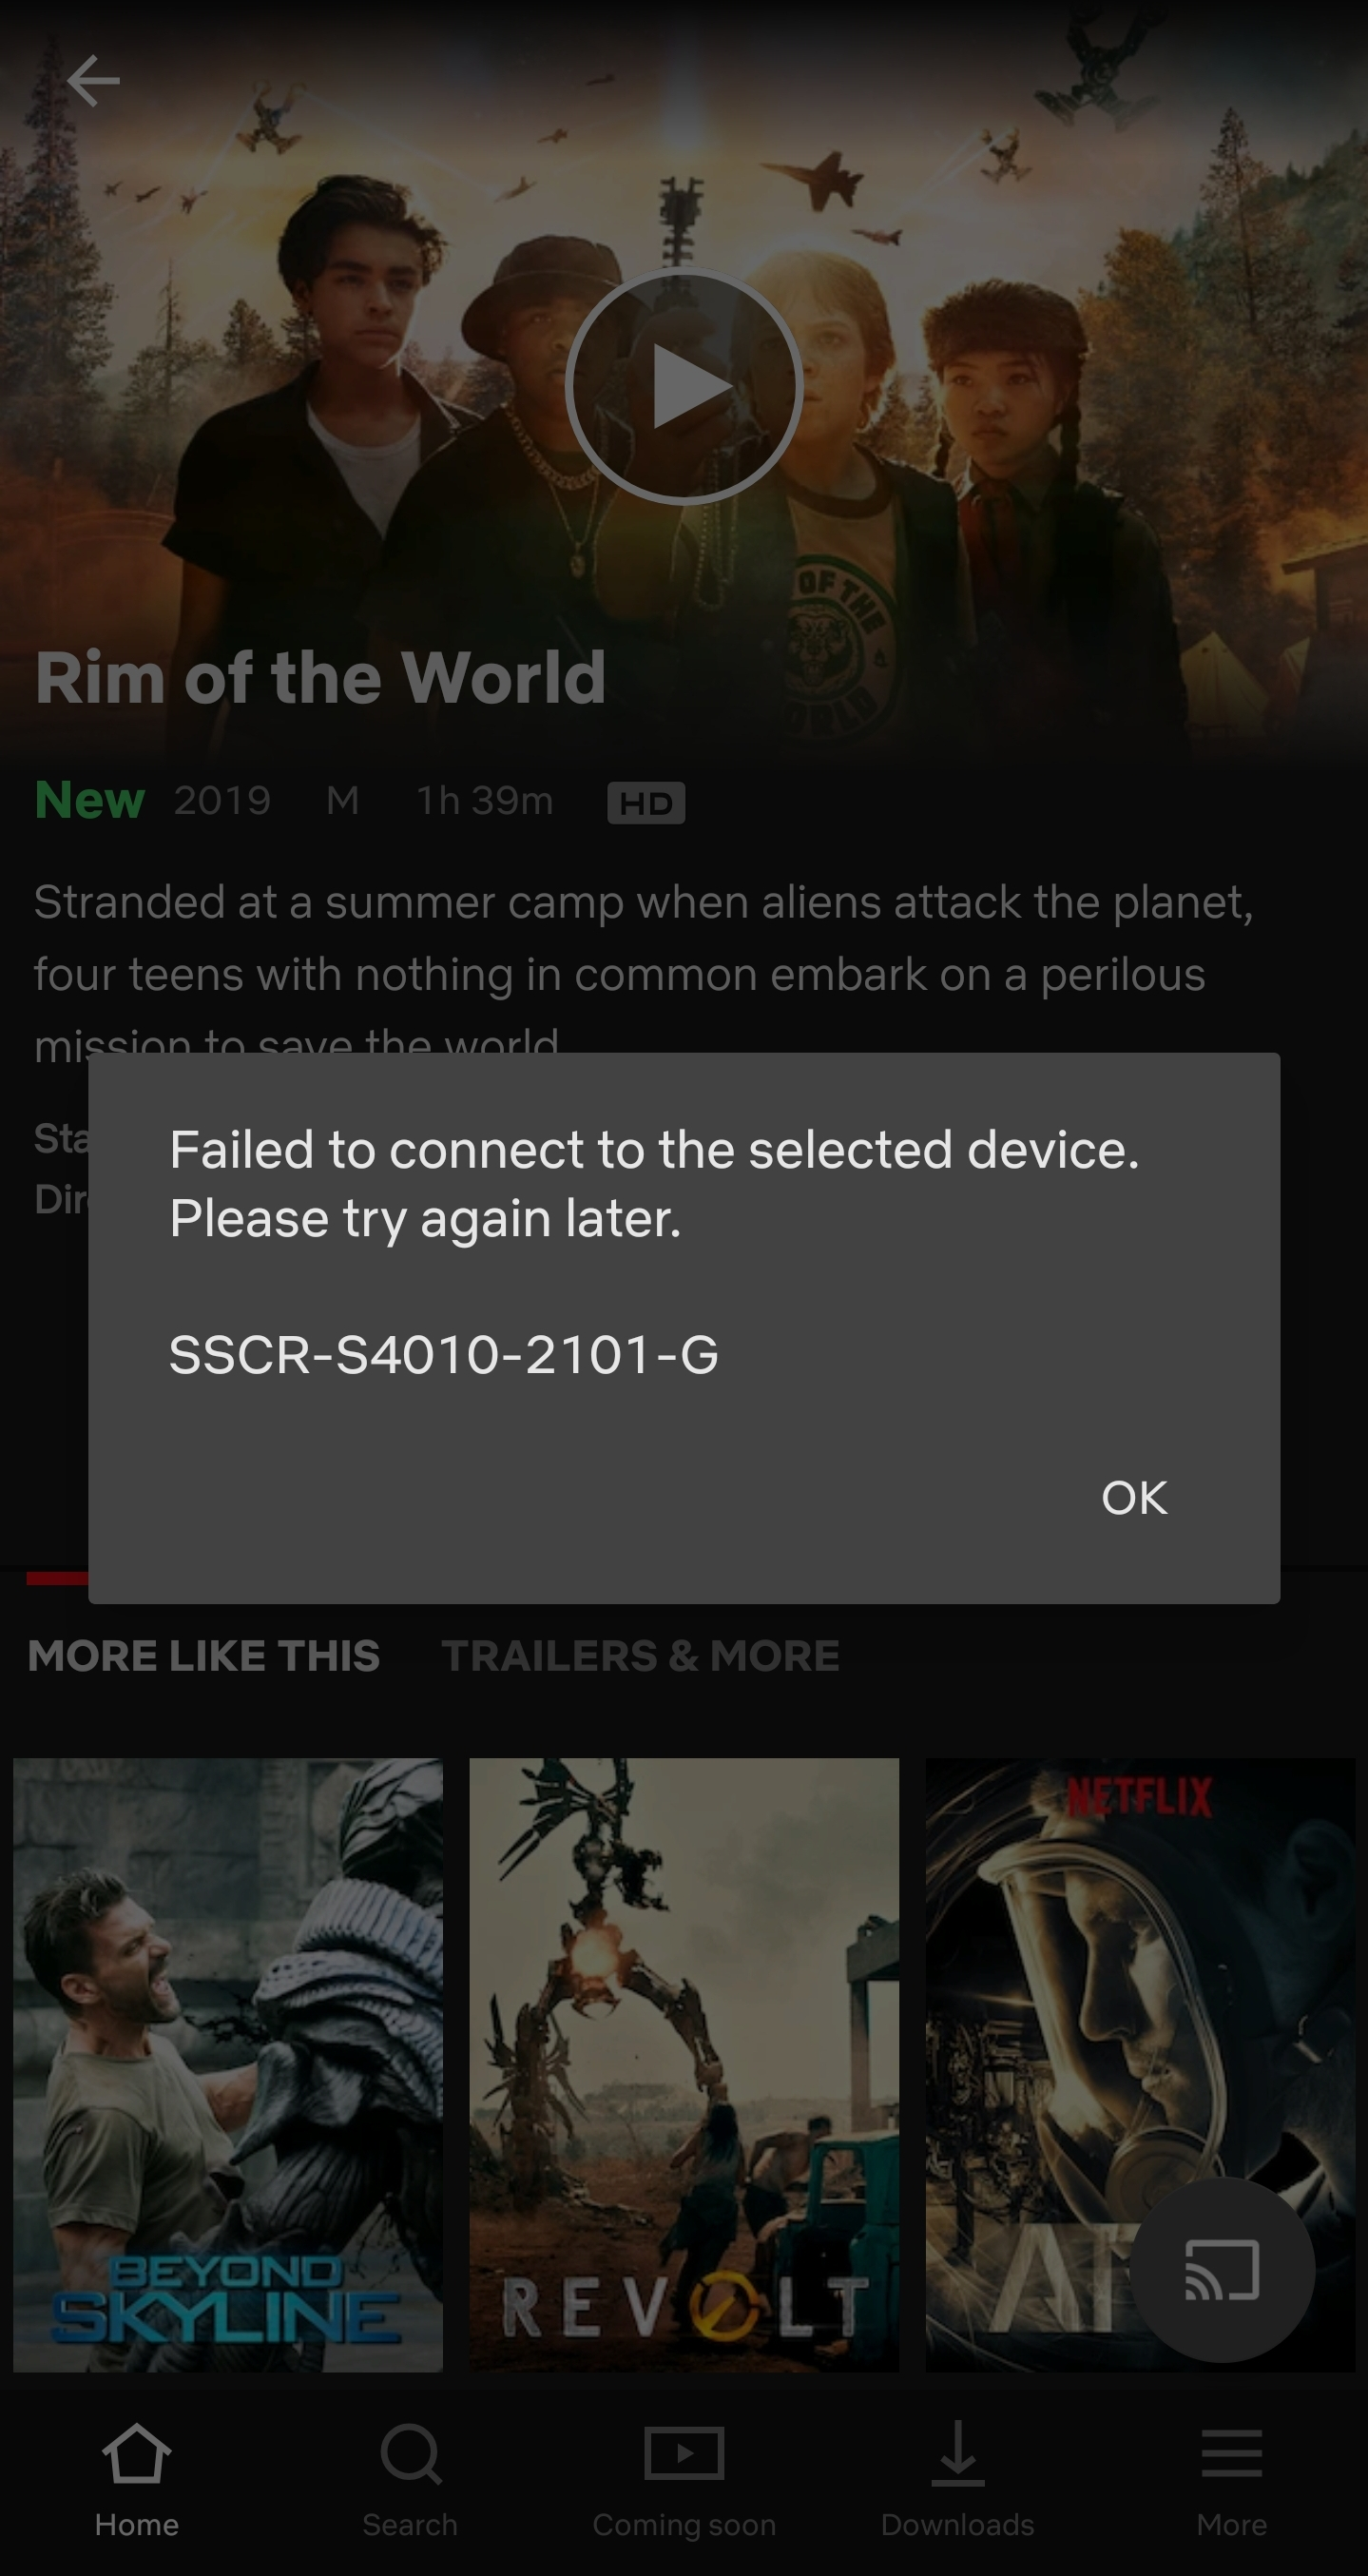 How to solve this error message when trying to cast Netflix